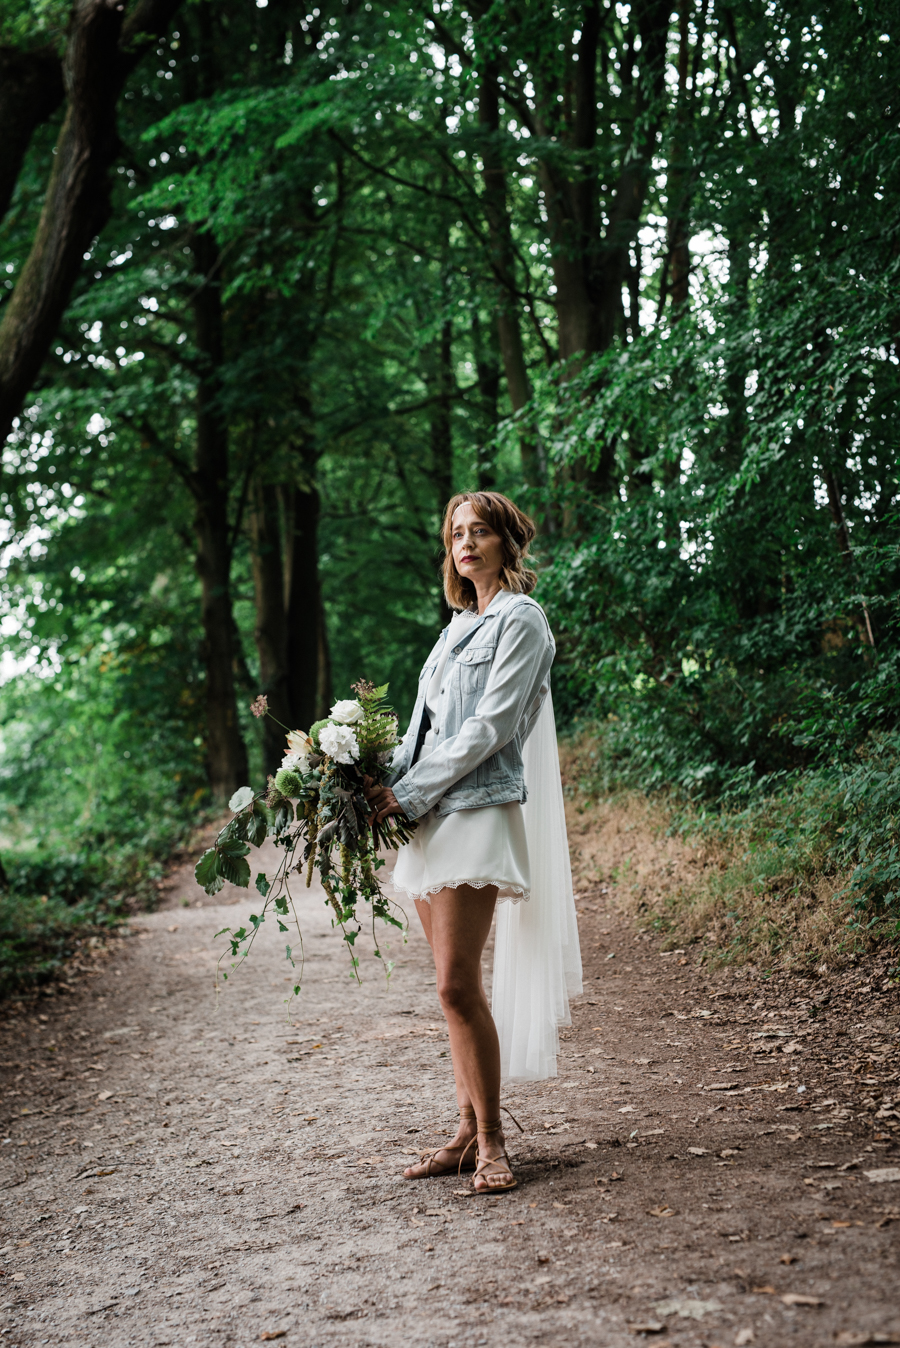 Sail away with me... wedding playsuit and fabulous florals by Fantail, image Fox Moon Photography (19)